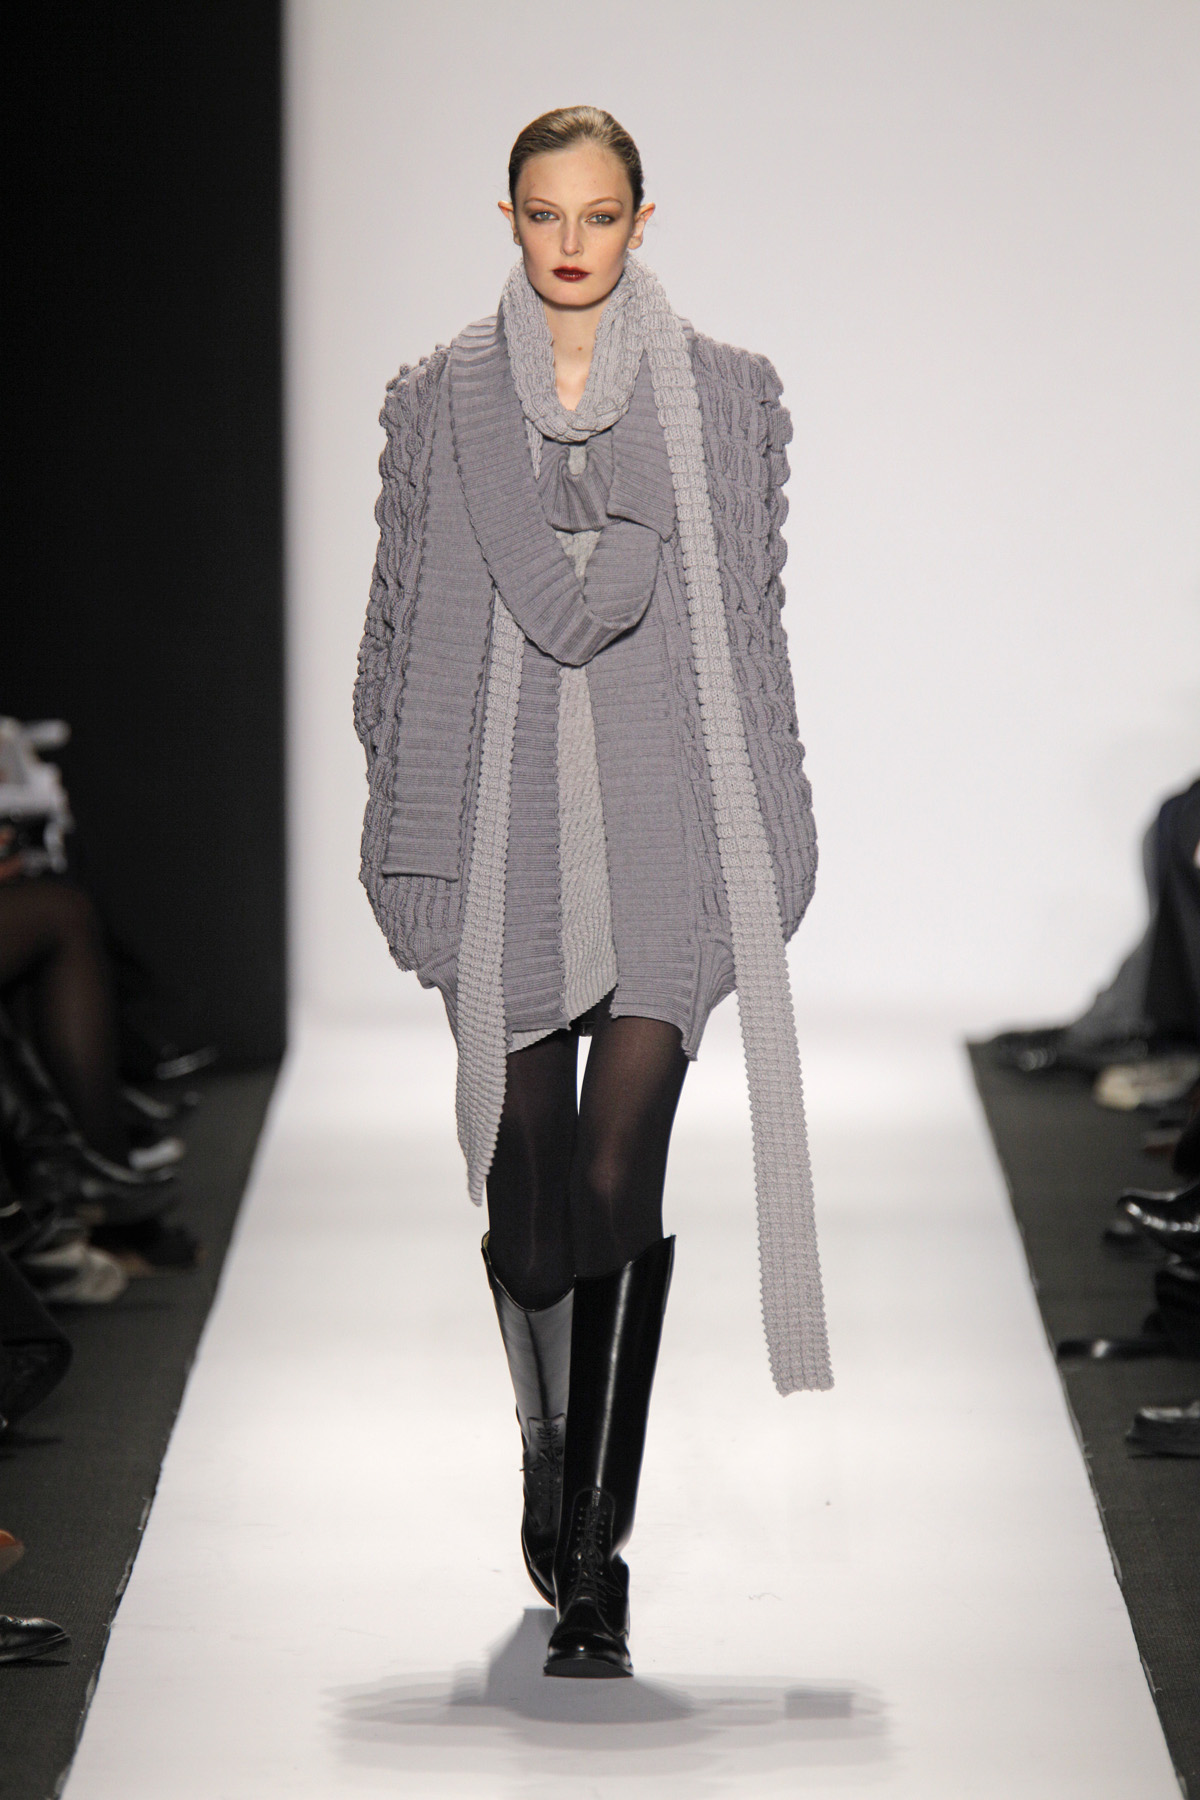 Steven Oo Fall 2010 at Mercedes-Benz Fashion Week ...